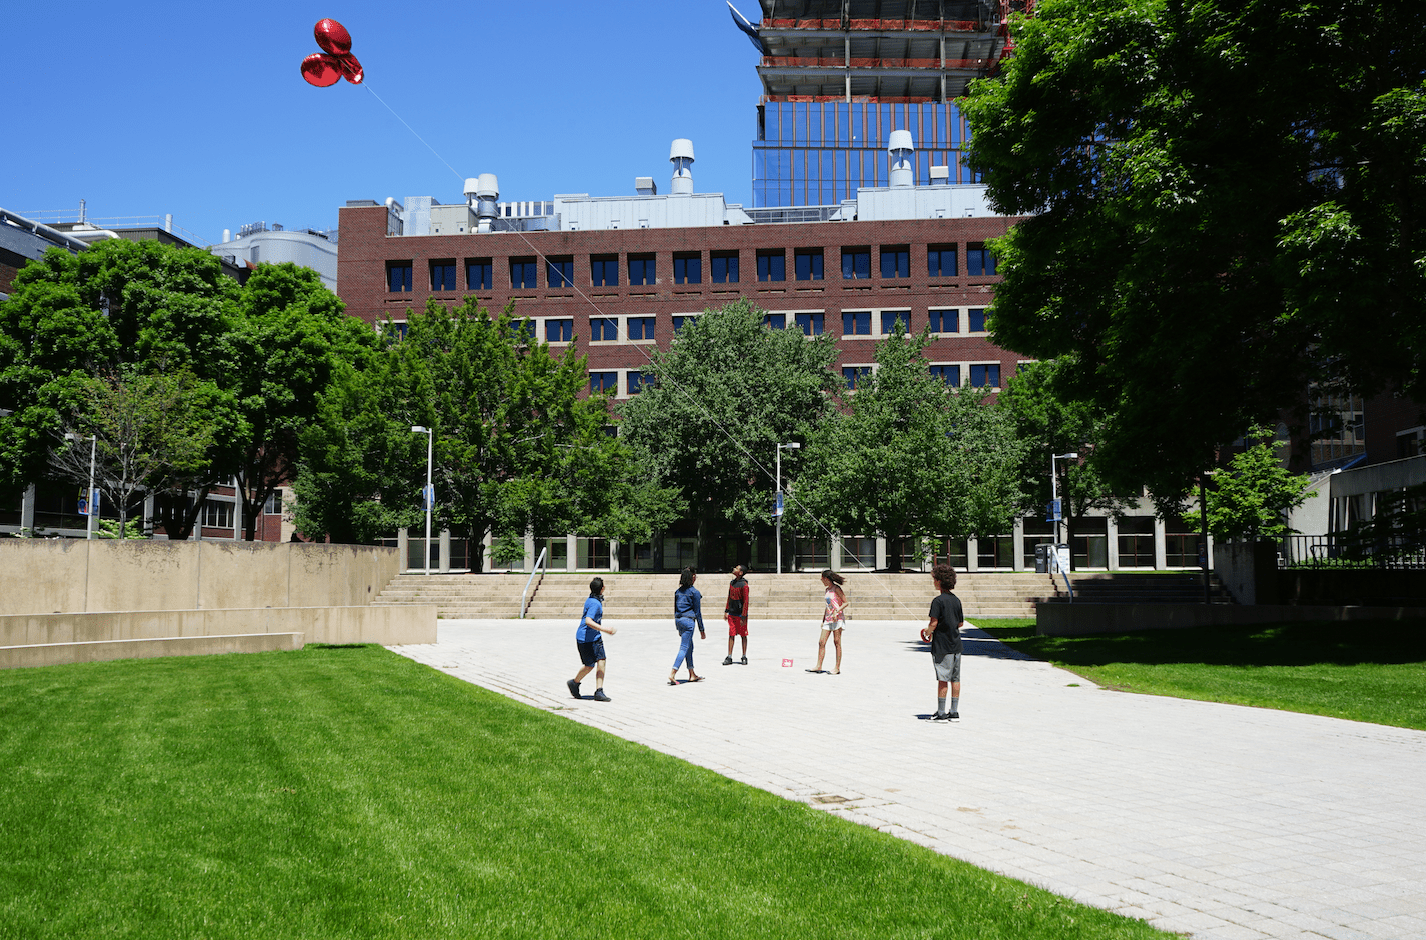 Experimenting with detecting vegetation on the MIT campus using aerial imaging.